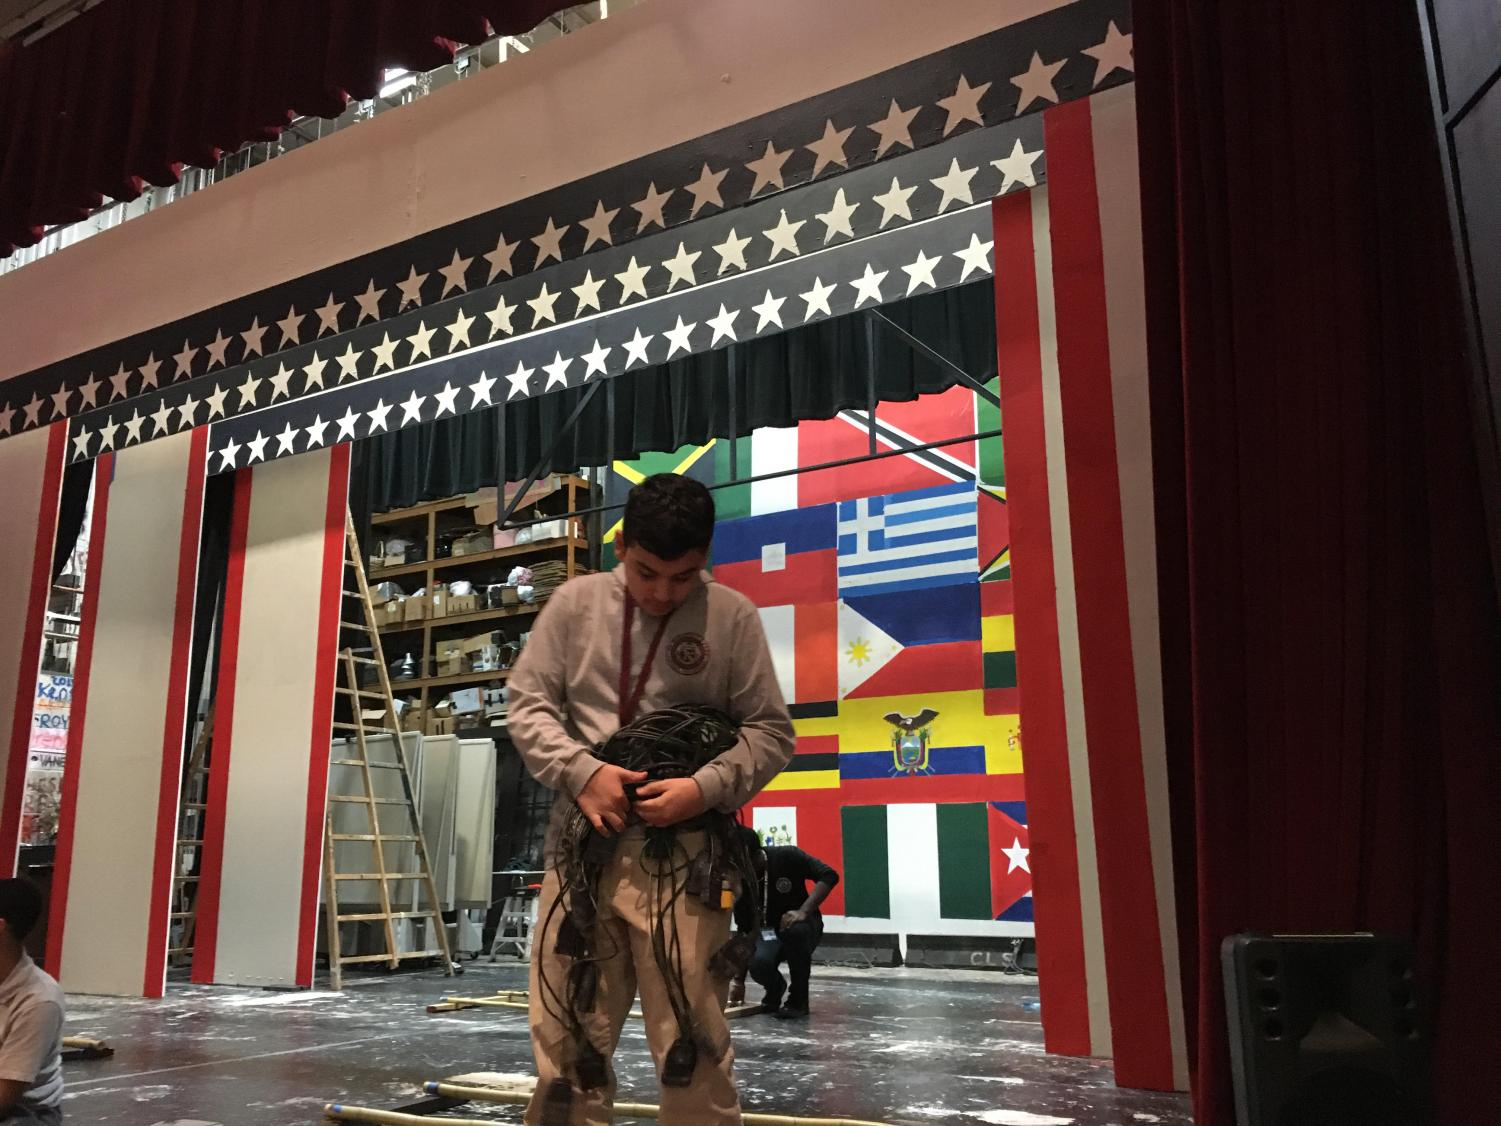 Adrian Vasquez UDI and other tech crew members of the SBP Drama Guild making some final touches to the set of the upcoming play.